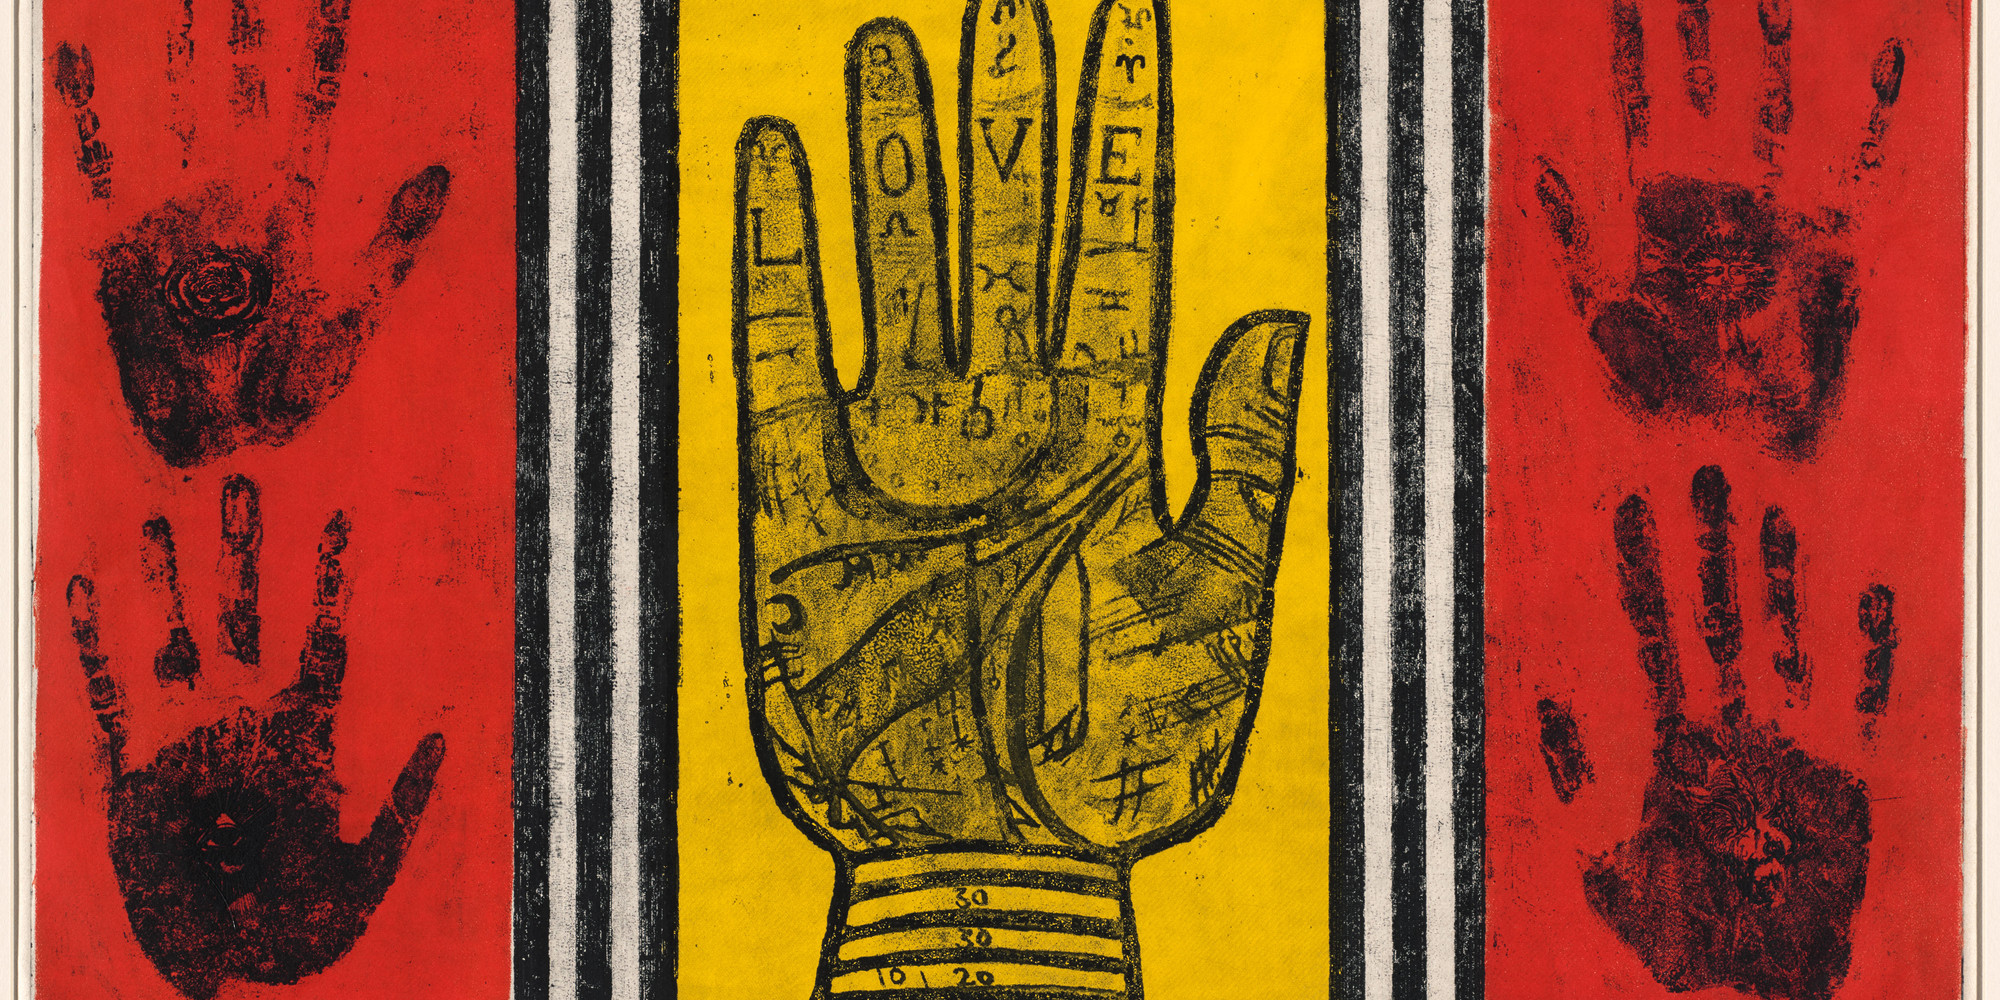 "Betye Saar. Palm of Love. 1966. Etching with relief printing, plate: 17 15/16 × 23 3/4"" (45.6 × 60.3 cm); sheet: 19 1/16 × 26 1/16"" (48.4 × 66.2 cm). Committee on Drawings and Prints Fund"